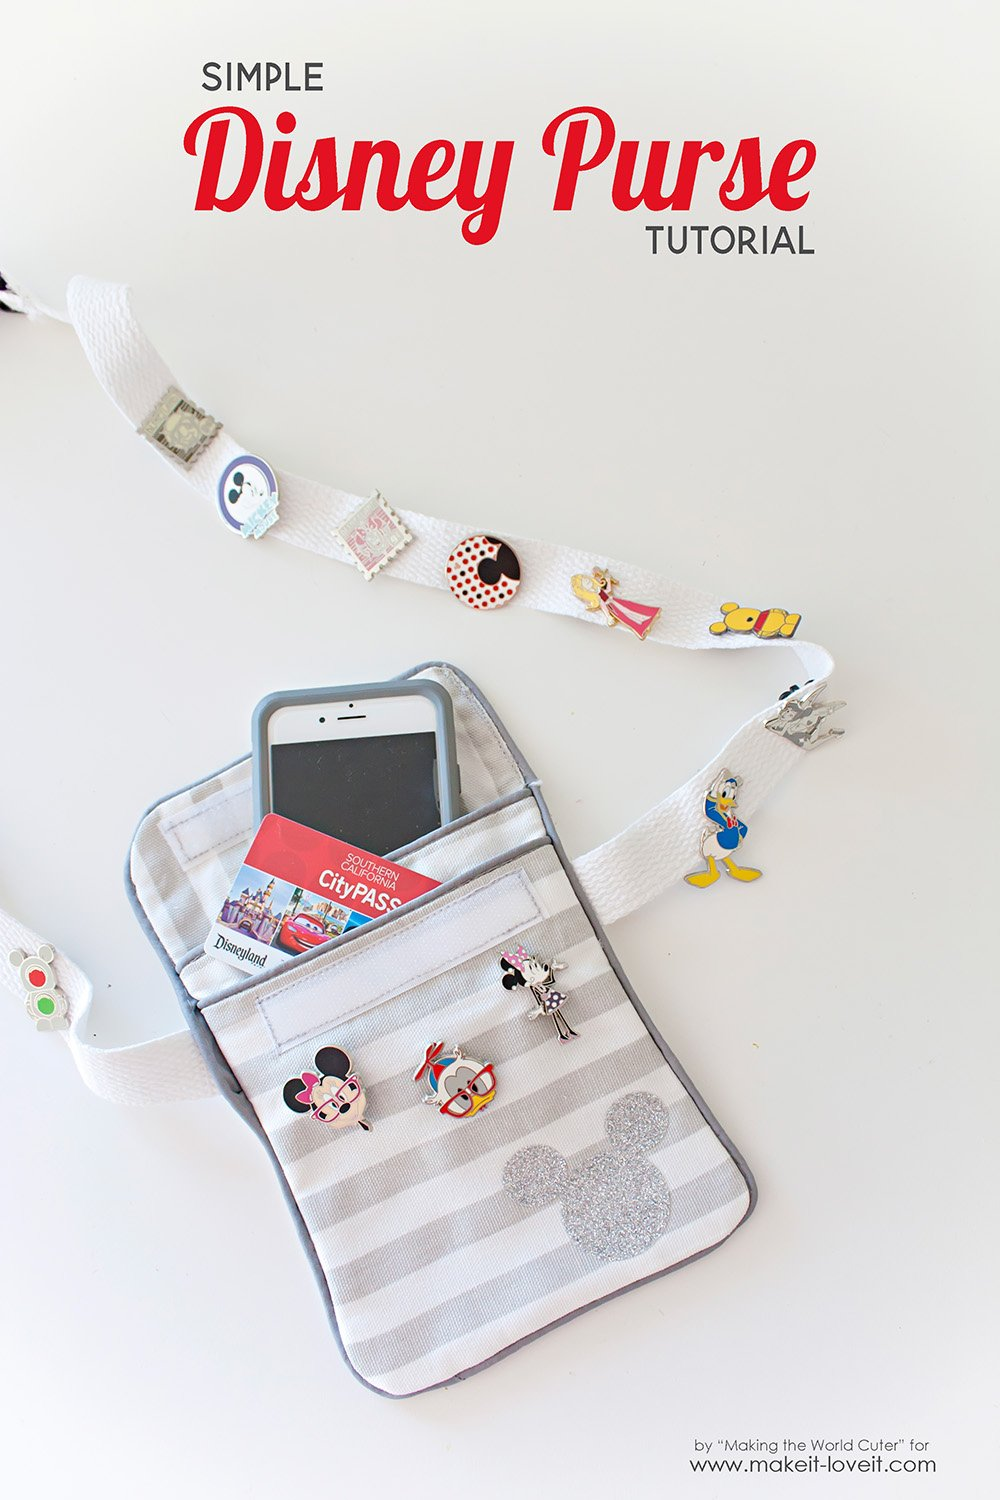 Simple Disney Vacation Purse Tutorial....for trading pins, cell phone, and fast pass holder! | via www.makeit-loveit.com